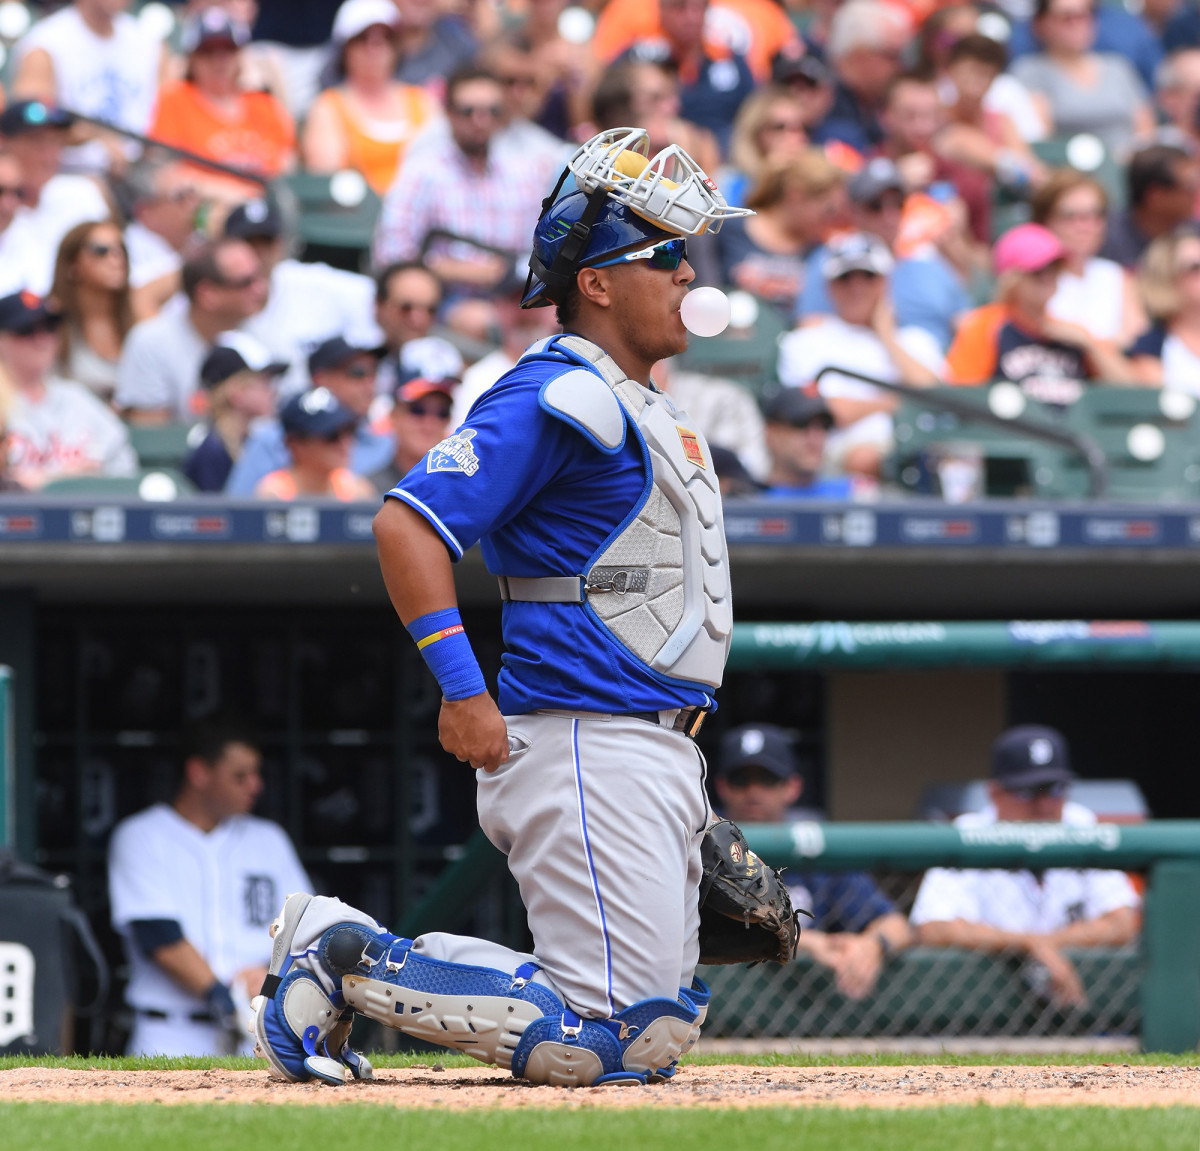 royals-catcher-perez-kneeling.jpg